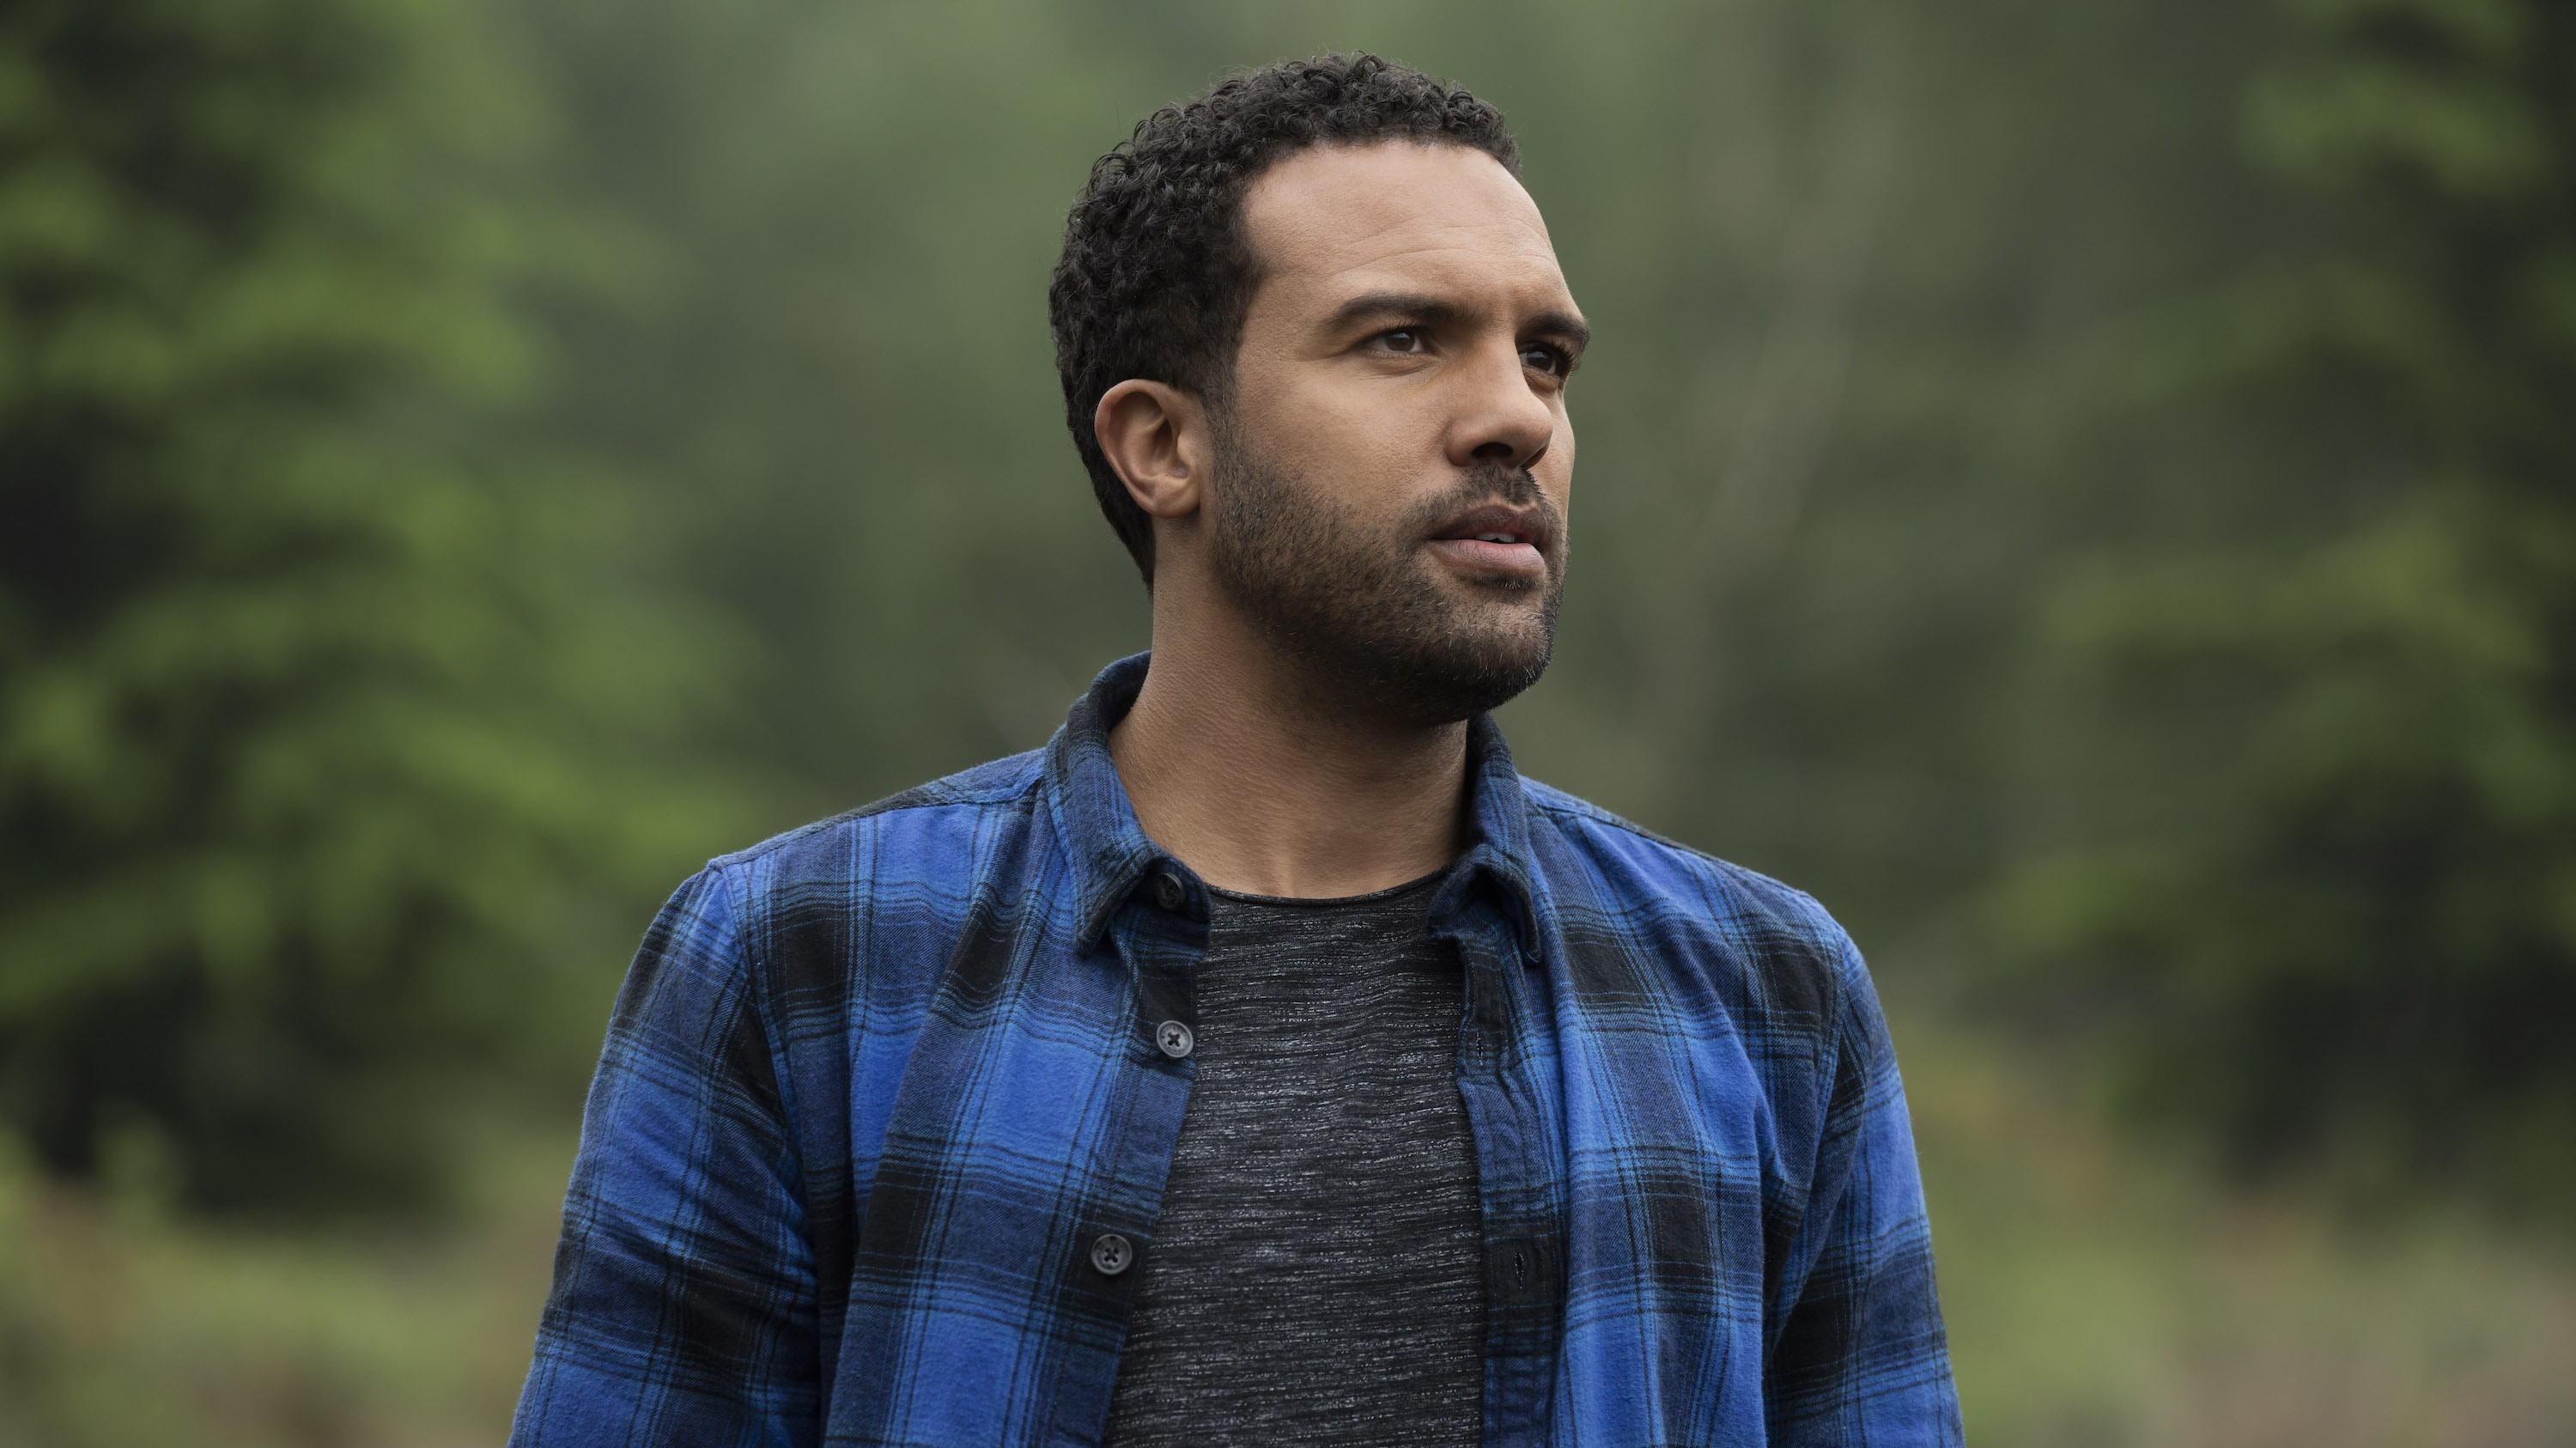 Mason (O-T Fagbenle) in Marvel Studios' BLACK WIDOW, in theaters and on Disney+ with Premier Access. Photo by Jay Maidment. ©Marvel Studios 2021. All Rights Reserved.